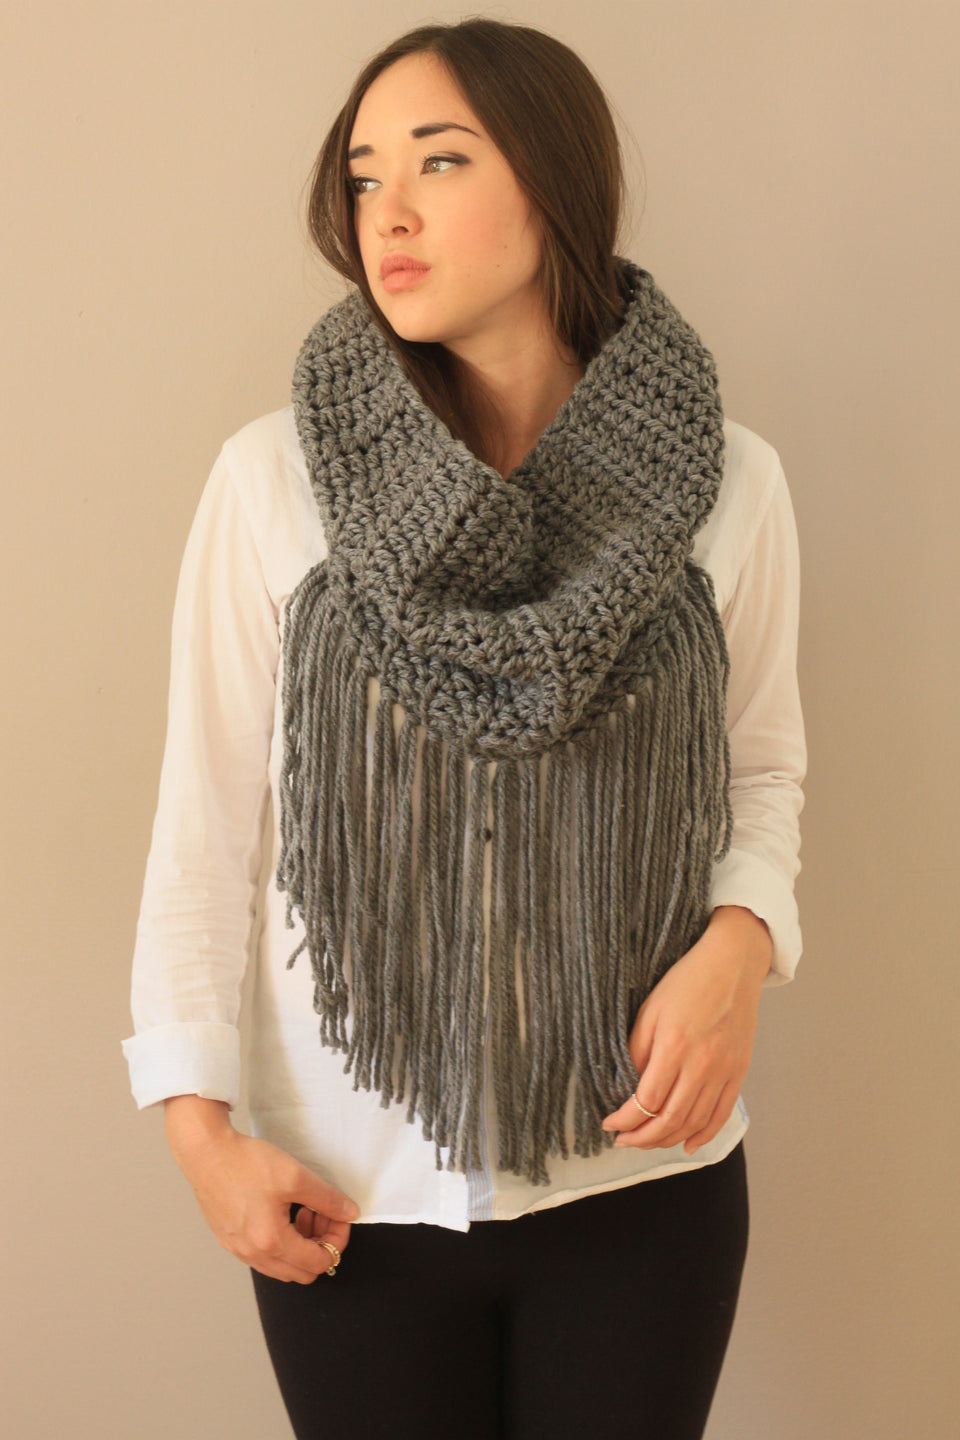 montreal made fringe cowl in grey cozy trendy